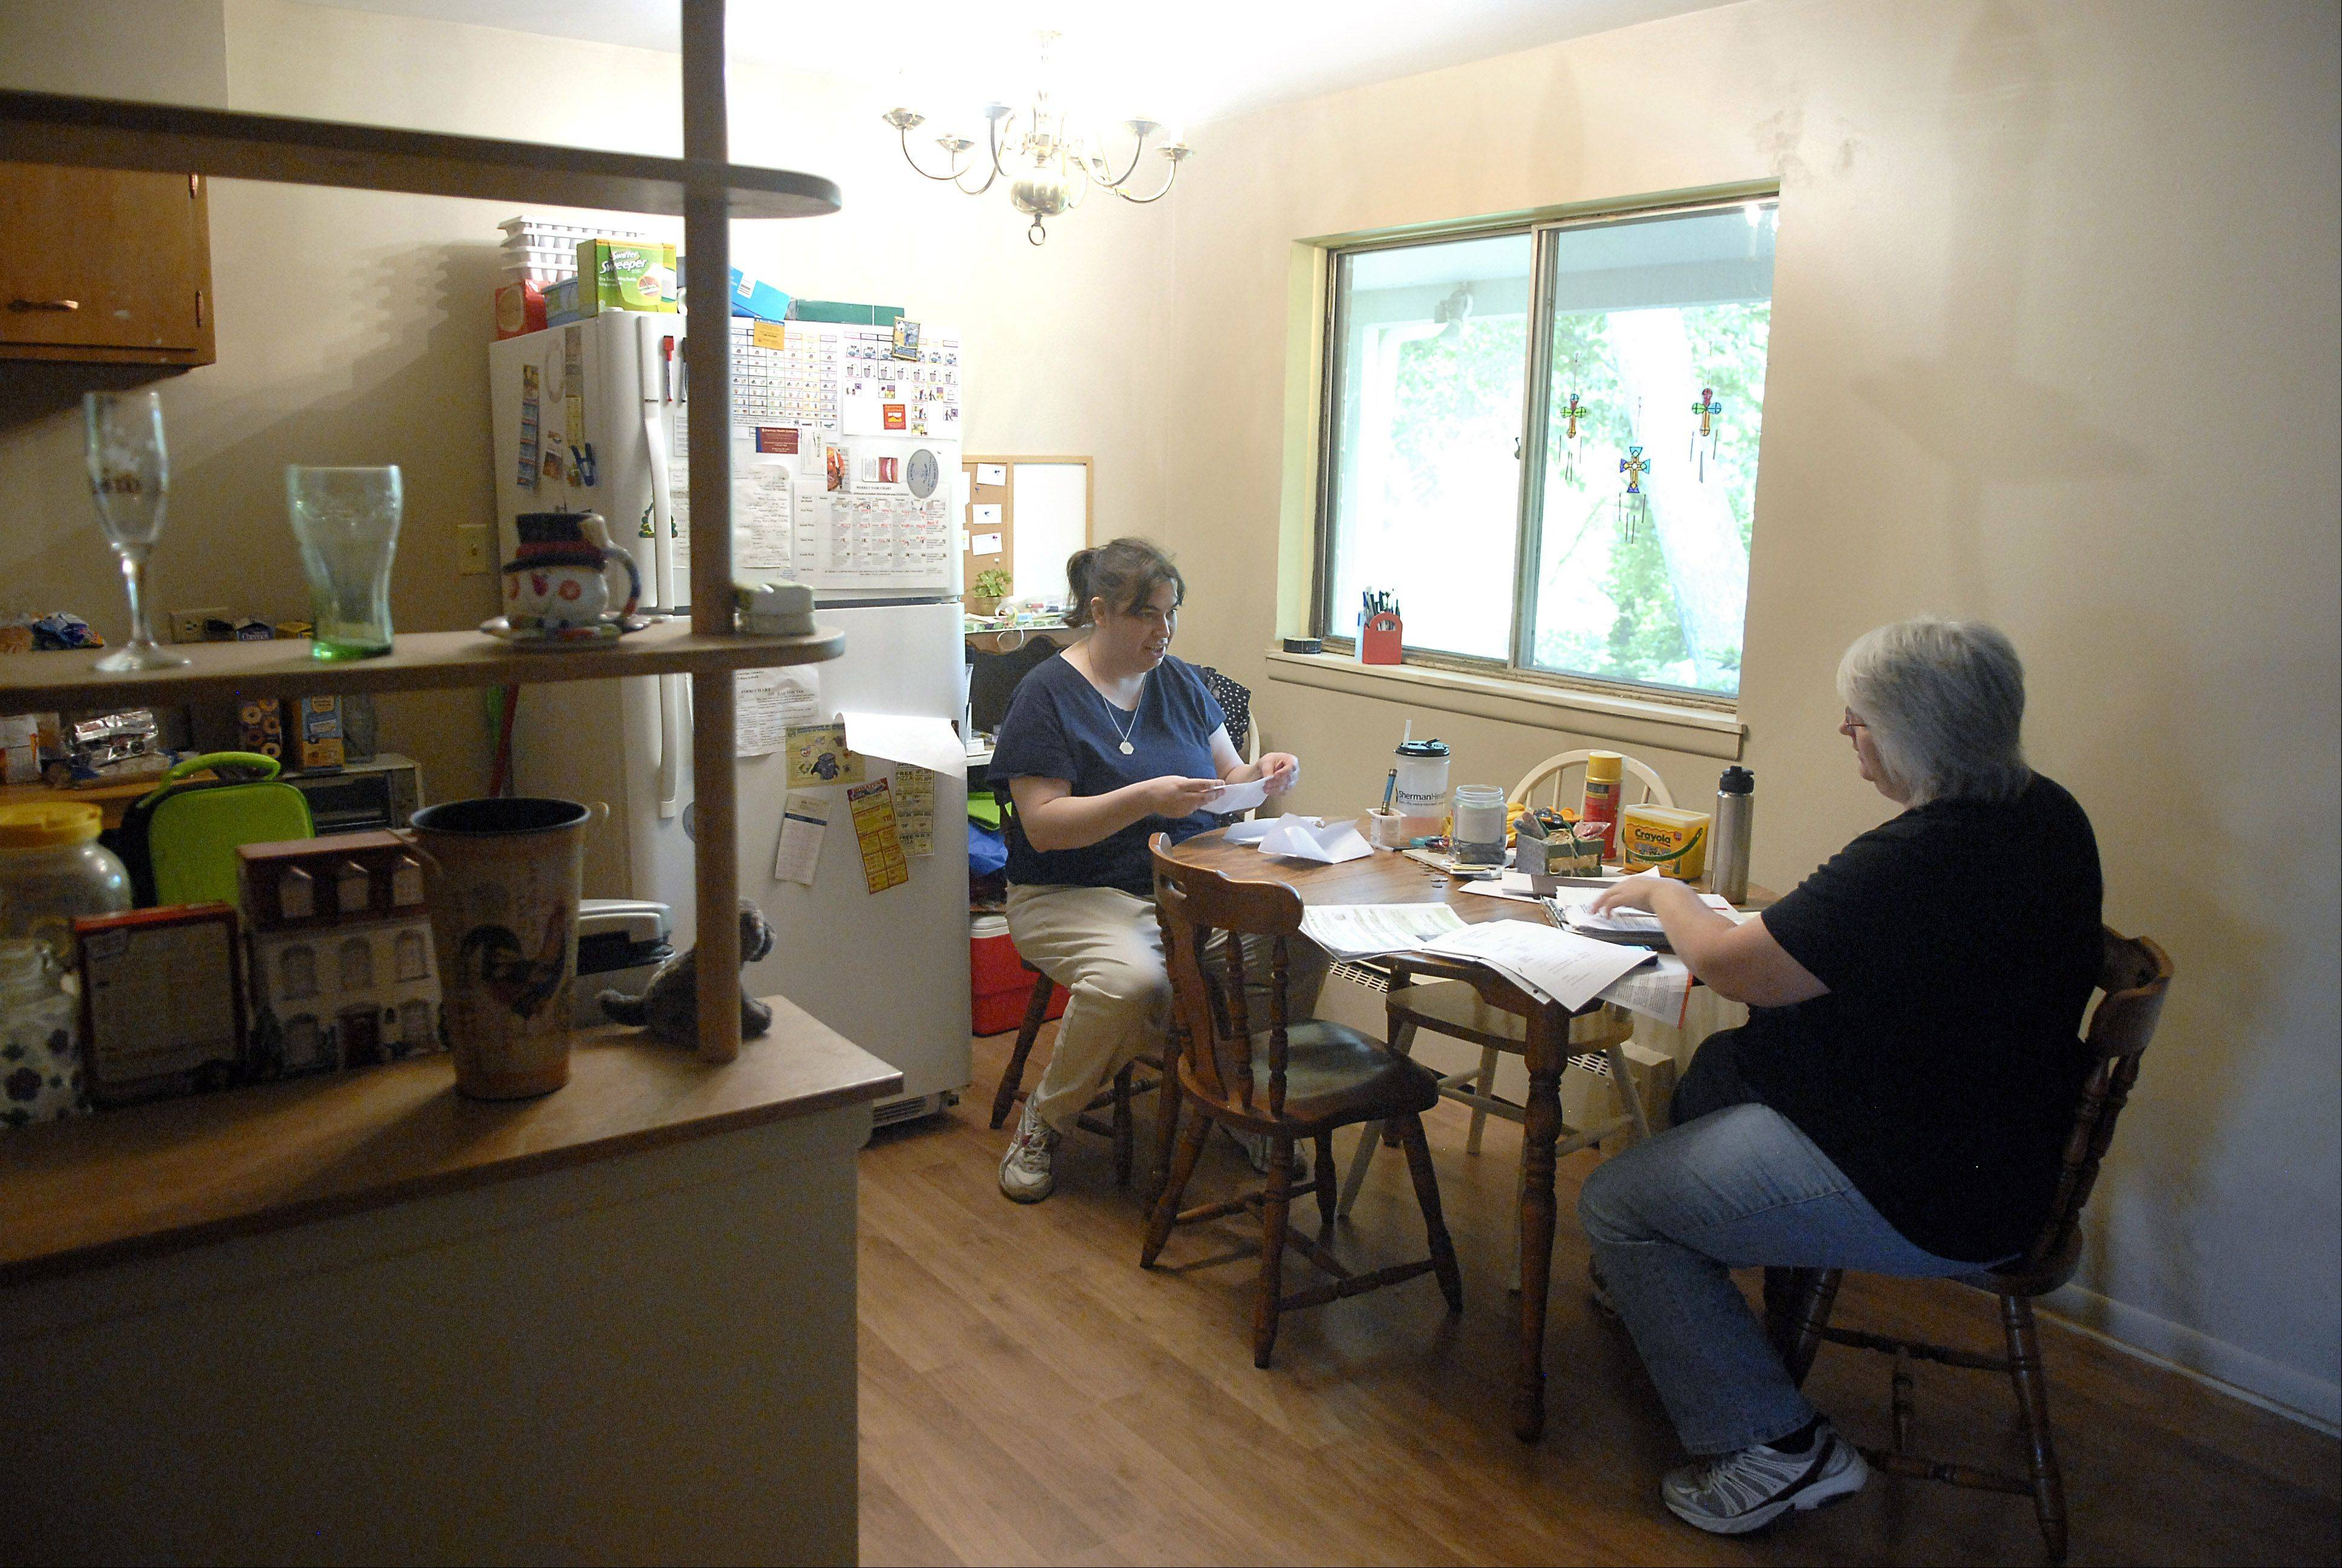 Schnell helps her client Marilyn budget and write out bills on a weekday morning in Marilyn's Elgin condo. Earlier in the morning, Lisa took Marilyn to the doctor for some tests, and would later take her to her job at the East Dundee Wal-Mart.